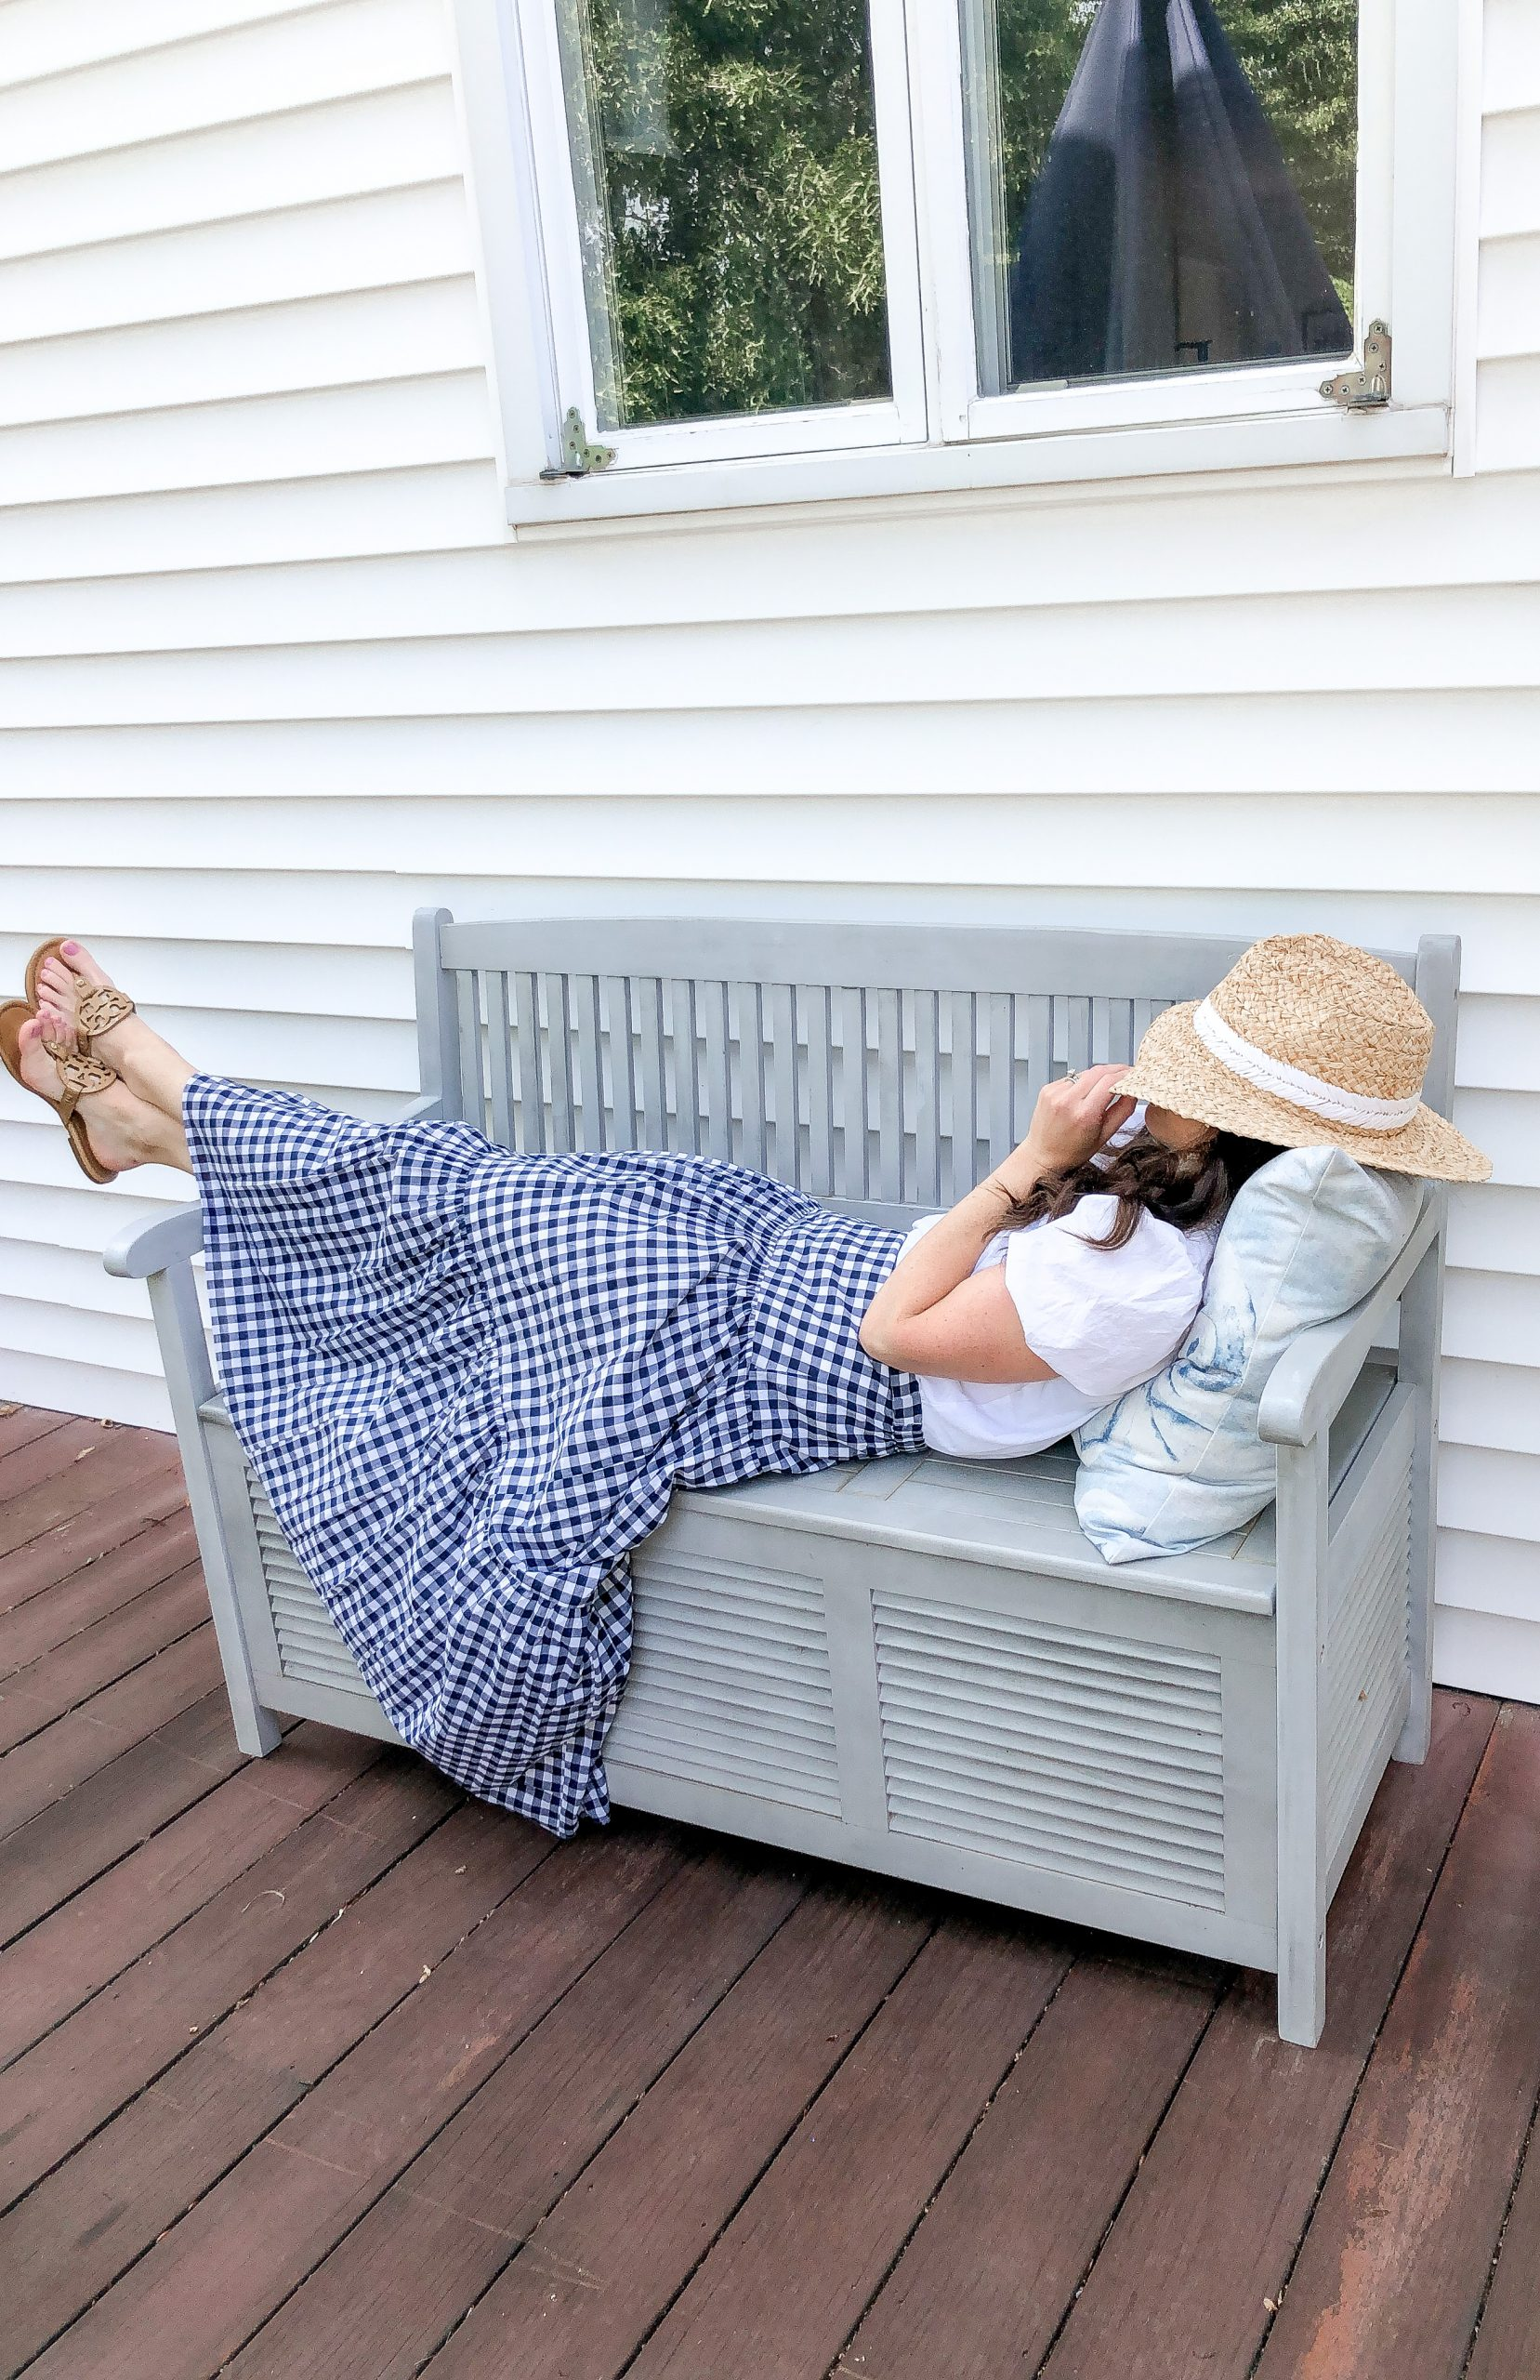 Woman in gingham skirt laying on blue bench with straw hat over her face